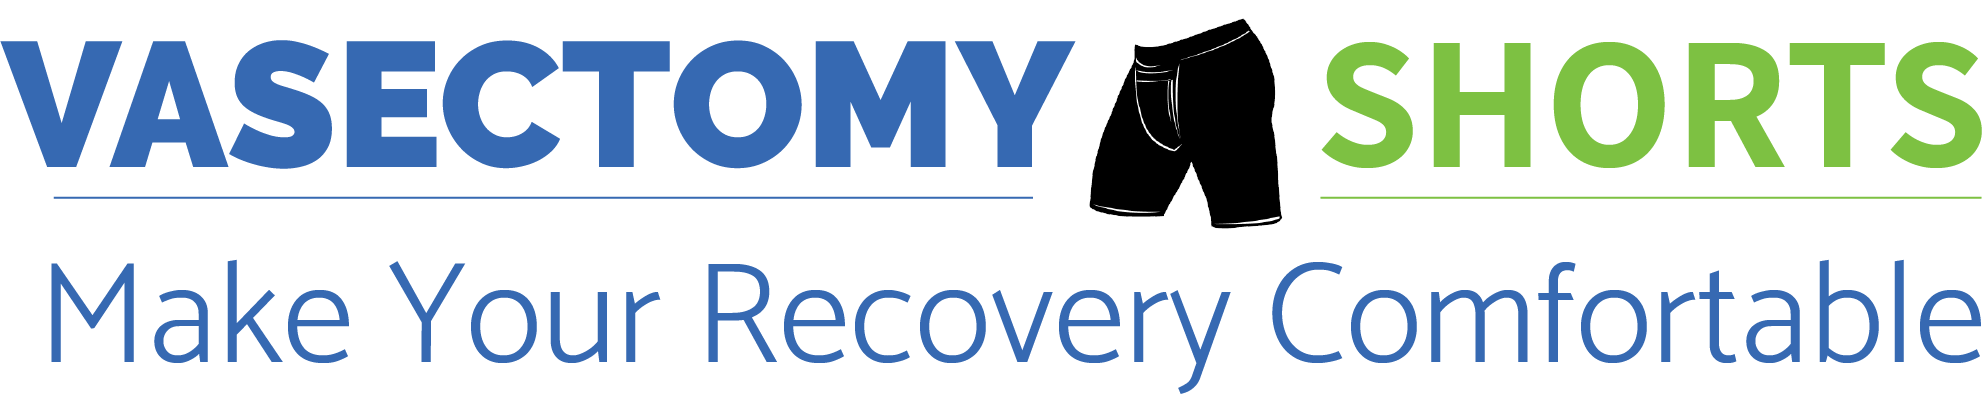 Vasectomy Shorts